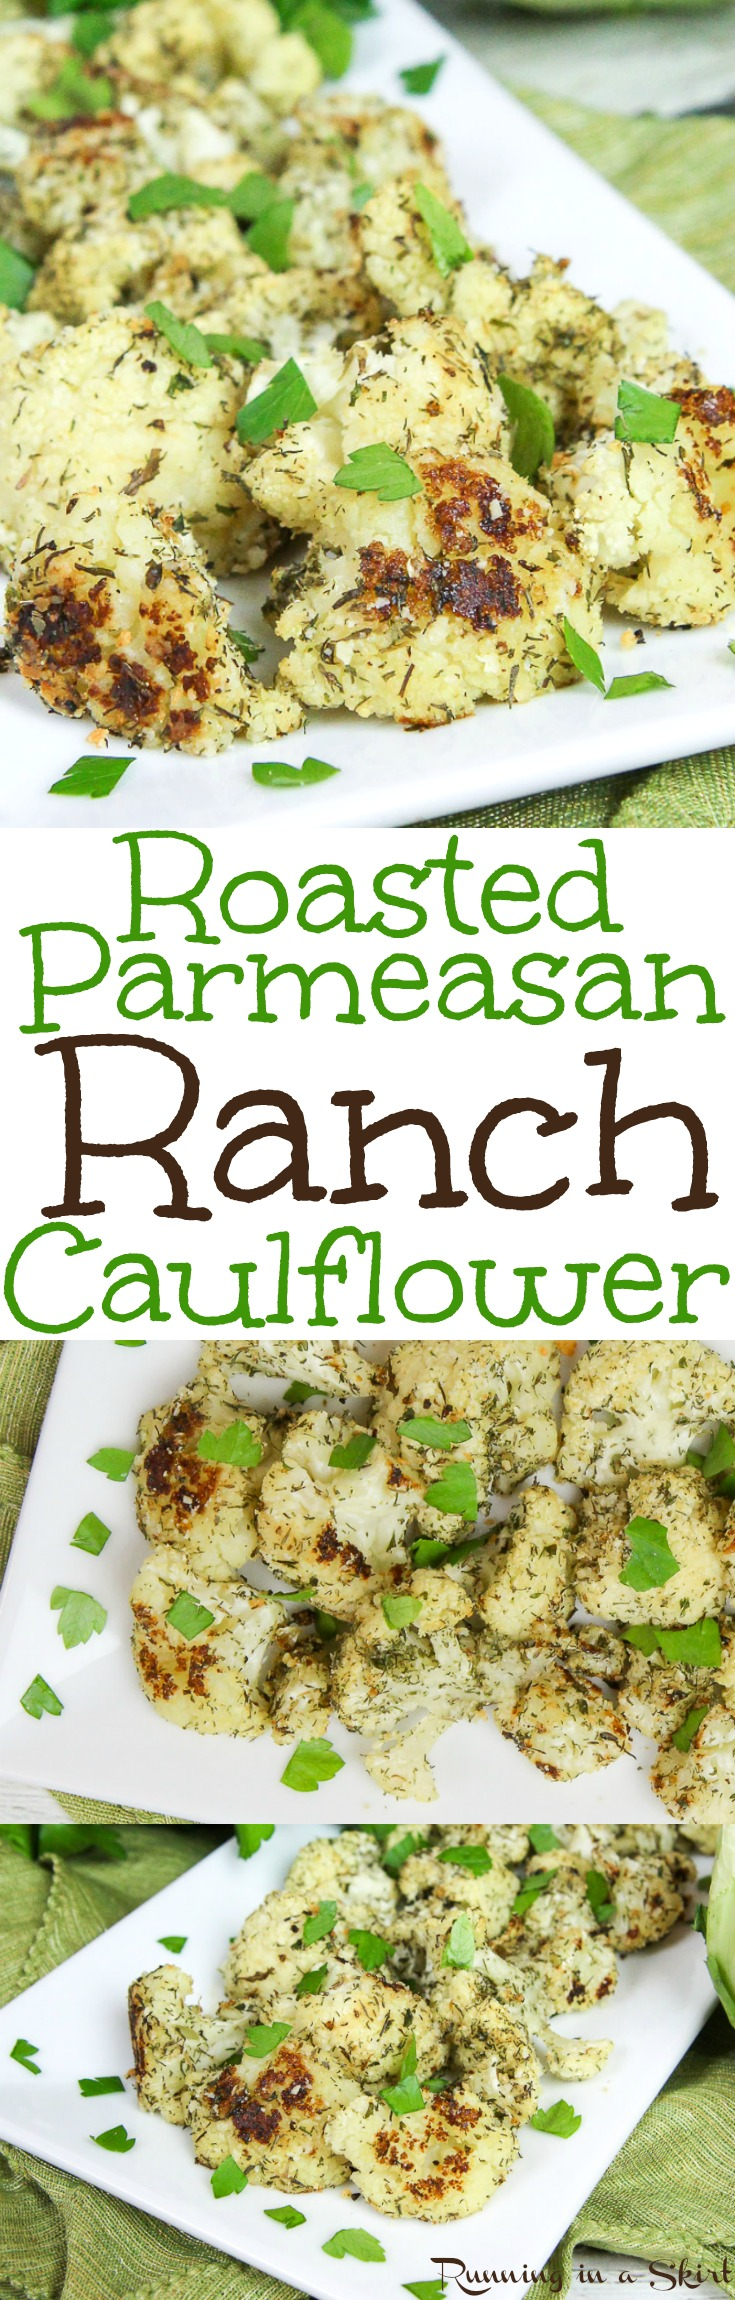 Healthy Roasted Parmesan Ranch Cauliflower Bites recipe.  Baked in the oven with homemade ranch seasoning.  A tasty low carb side dish or snack.  Easy, simple and totally addictive! / Running in a Skirt via @juliewunder